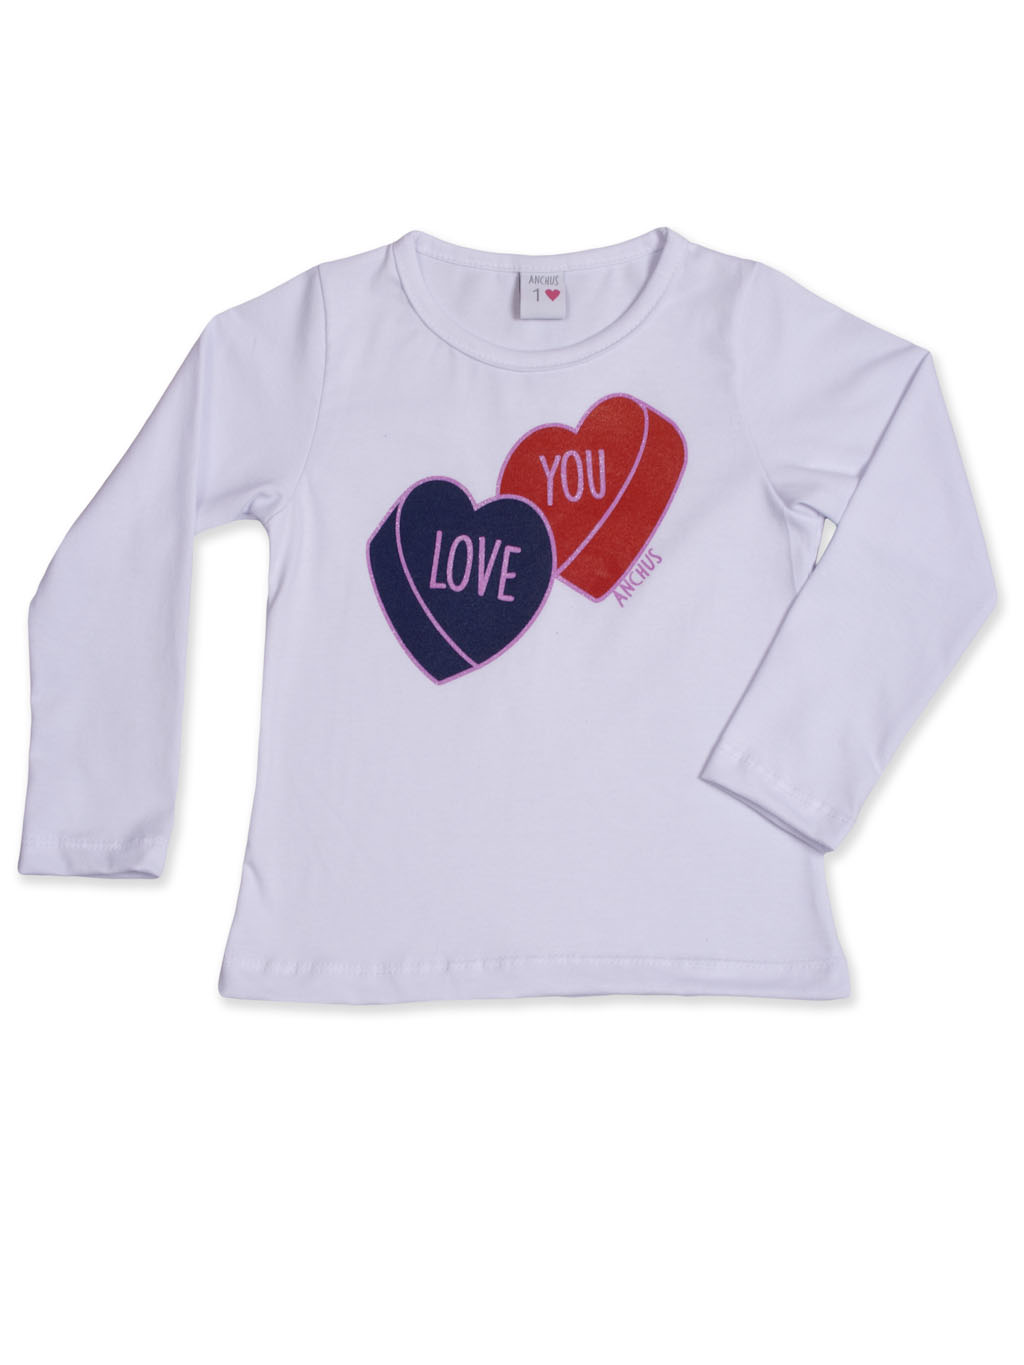 Remera ml Candy Love you